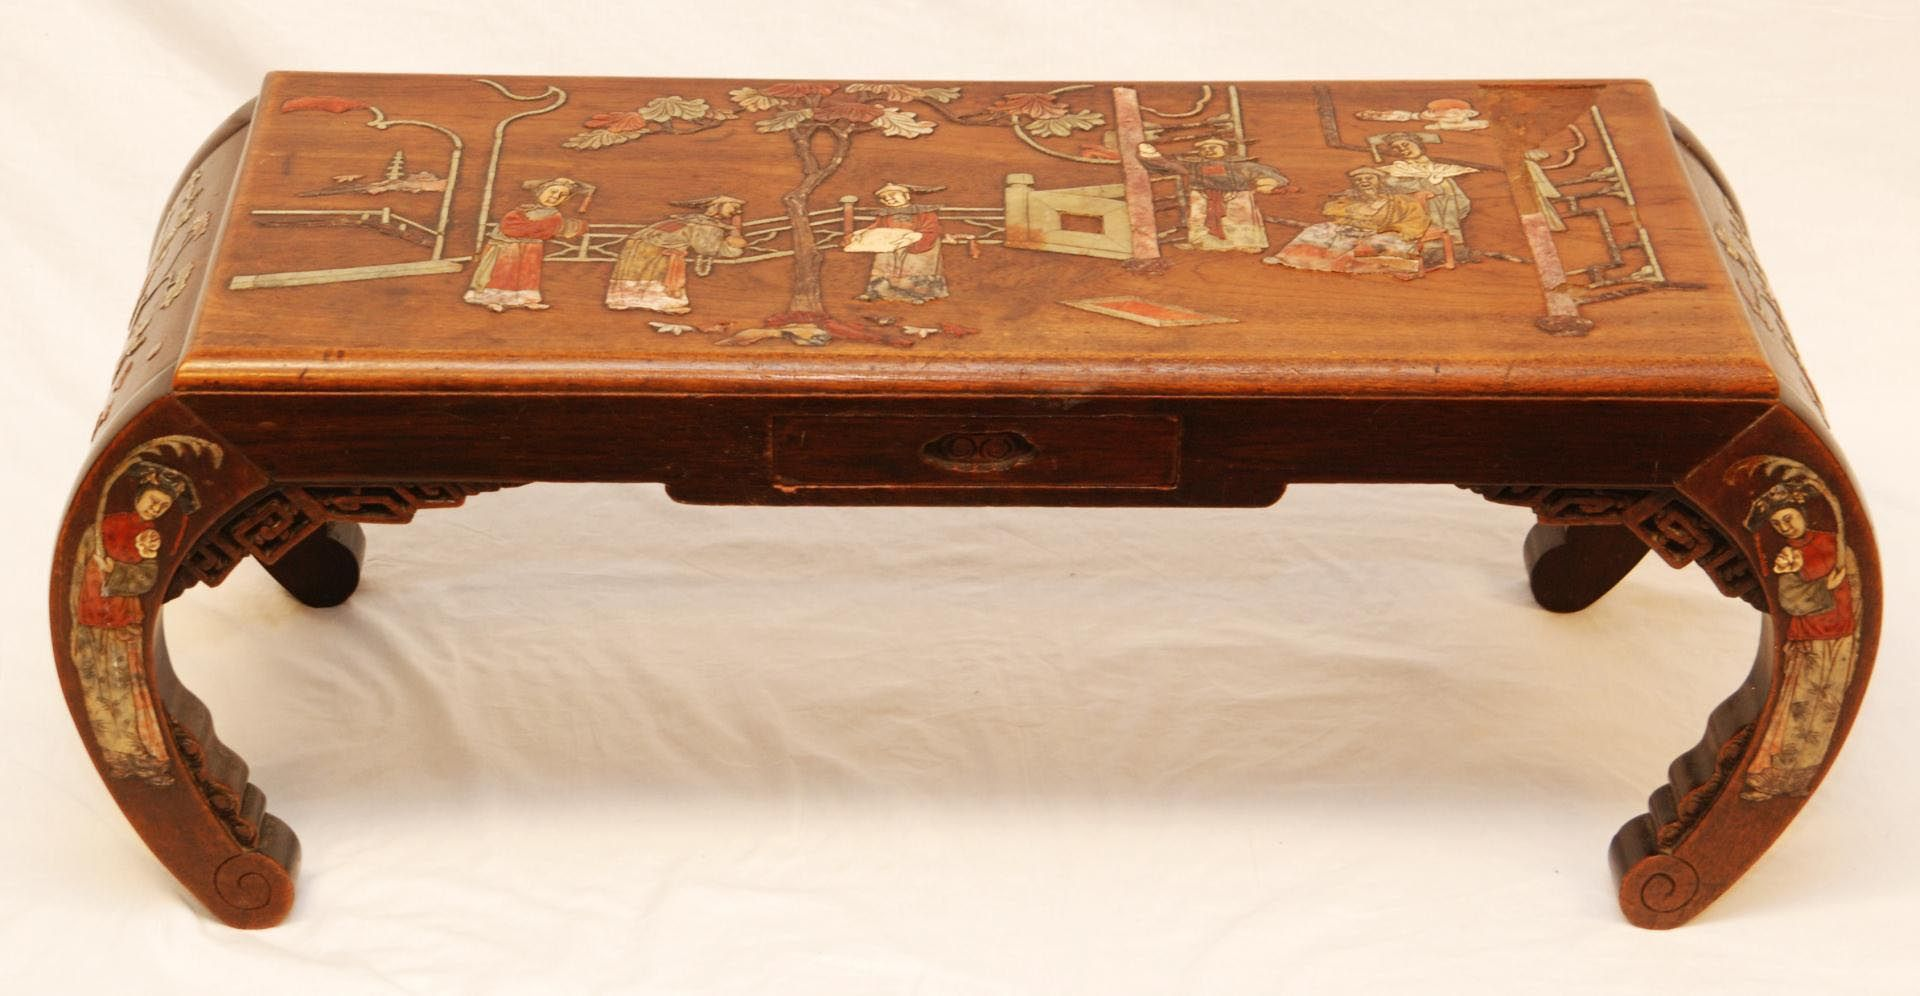 Antique Chinese Coffee Table Coffee Table Design Ideas Coffee Table Chinese Coffee Table Coffee Table Design [ 996 x 1920 Pixel ]